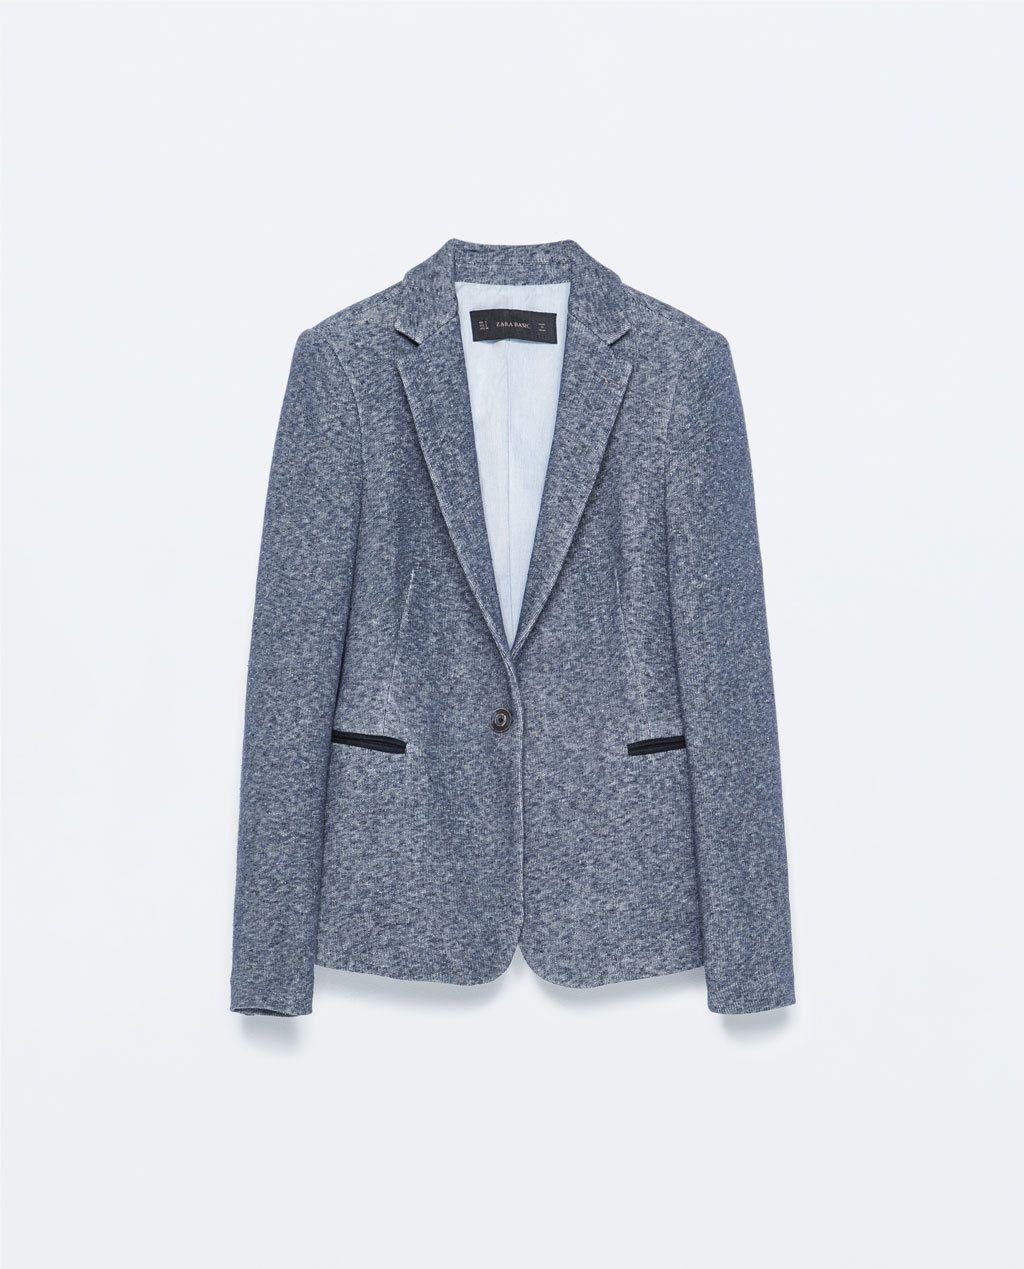 Jacket - style: single breasted blazer; collar: standard lapel/rever collar; pattern: herringbone/tweed; predominant colour: navy; occasions: casual, work, creative work; length: standard; fit: tailored/fitted; fibres: cotton - mix; sleeve length: long sleeve; sleeve style: standard; collar break: low/open; pattern type: fabric; pattern size: standard; texture group: woven light midweight; season: s/s 2015; hip detail: front pockets at hip